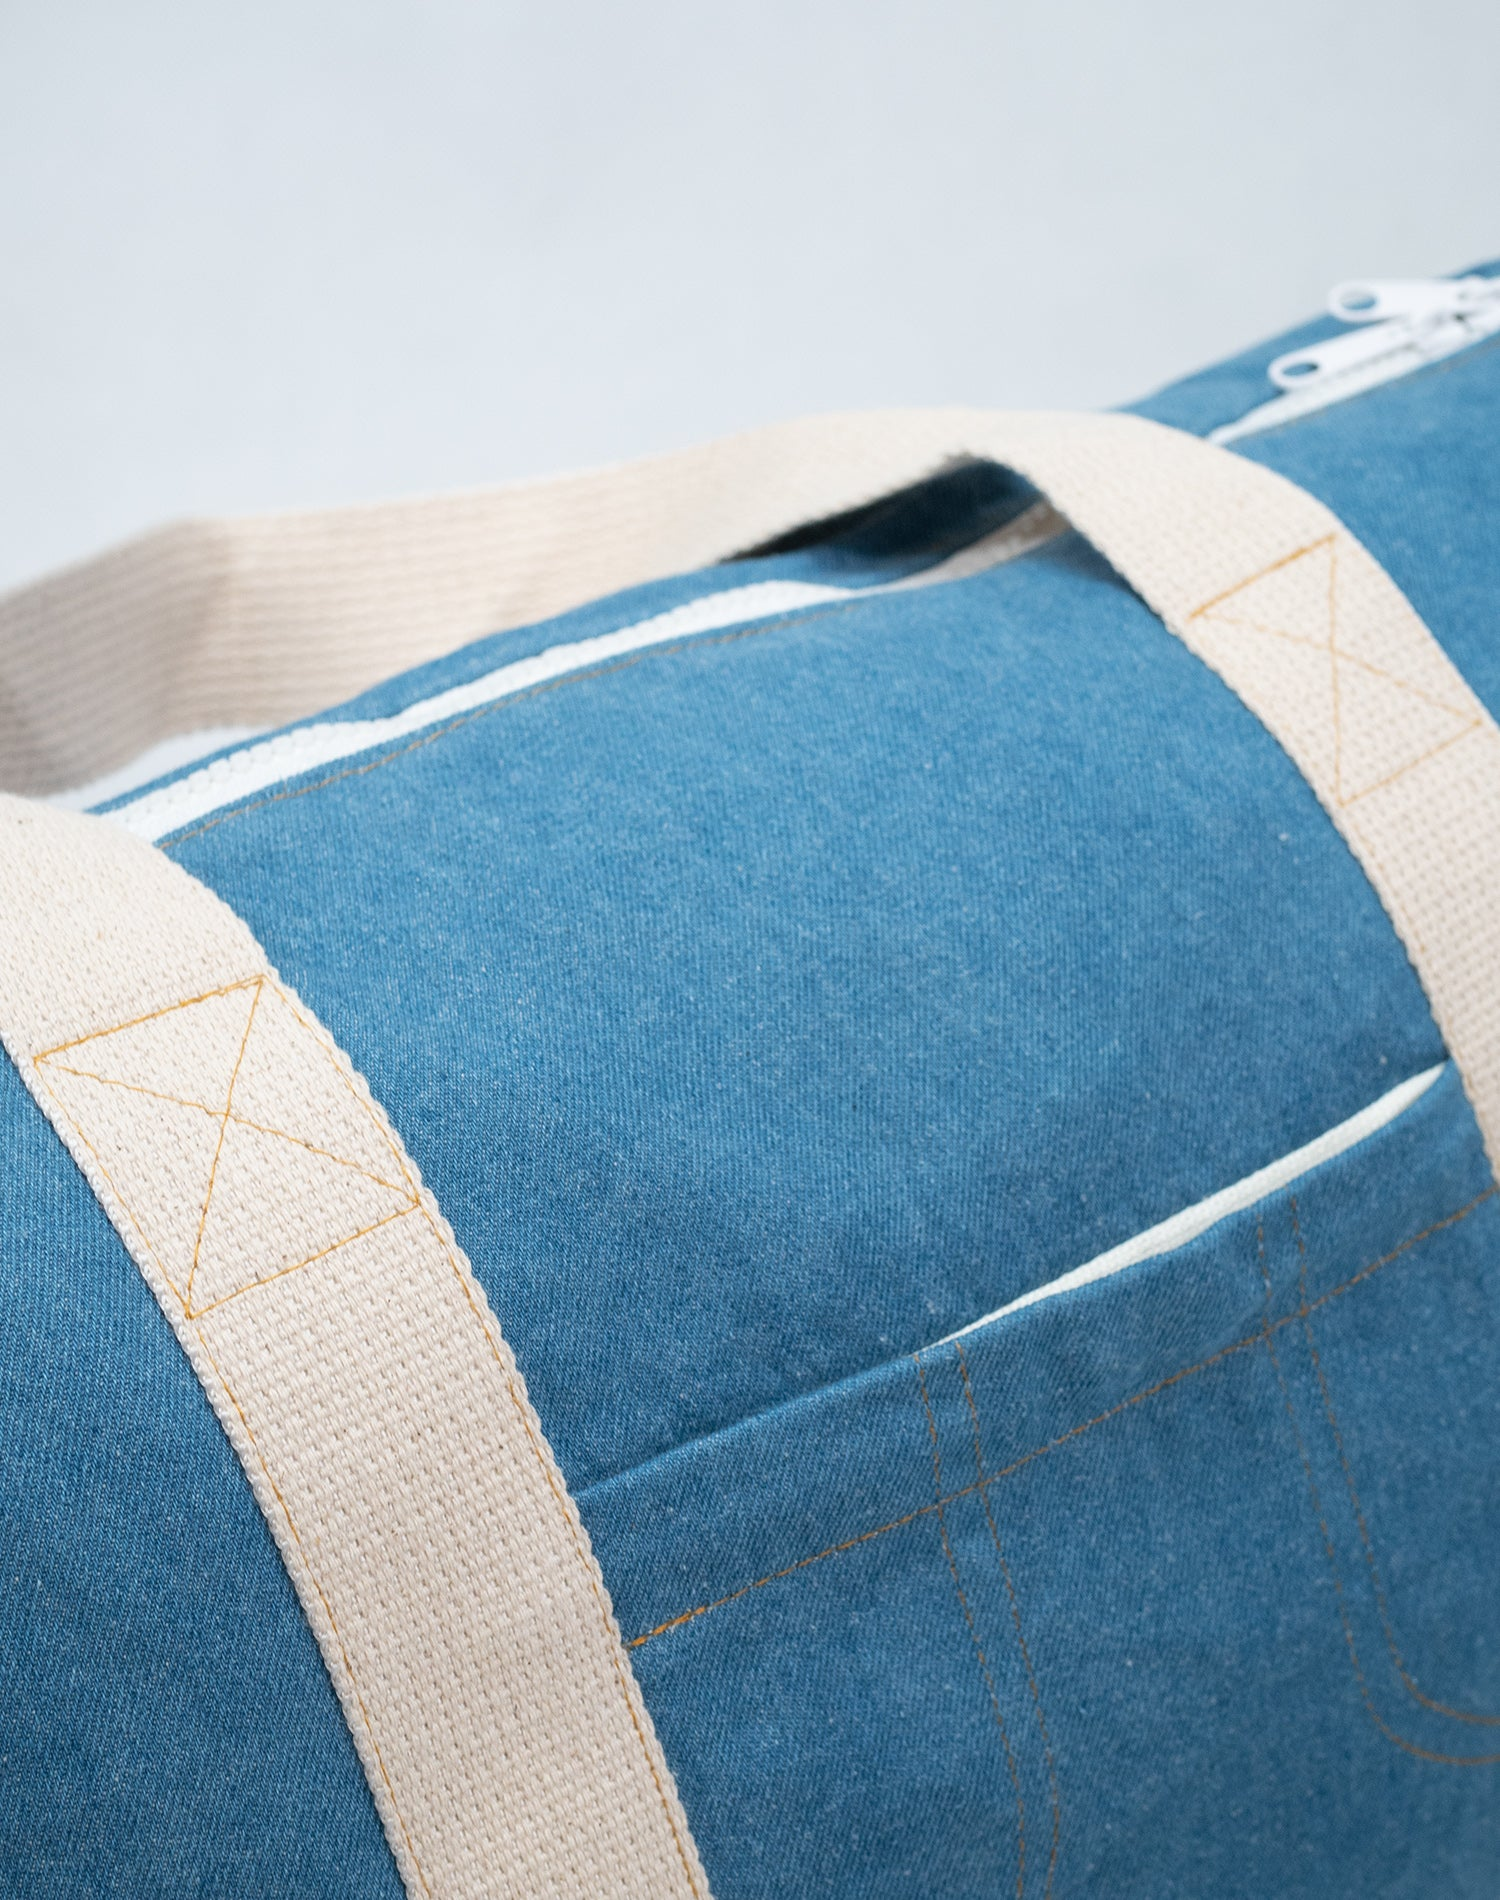 Powder Blue Canvas Street Duffel Bag.粉藍系帆布行李袋